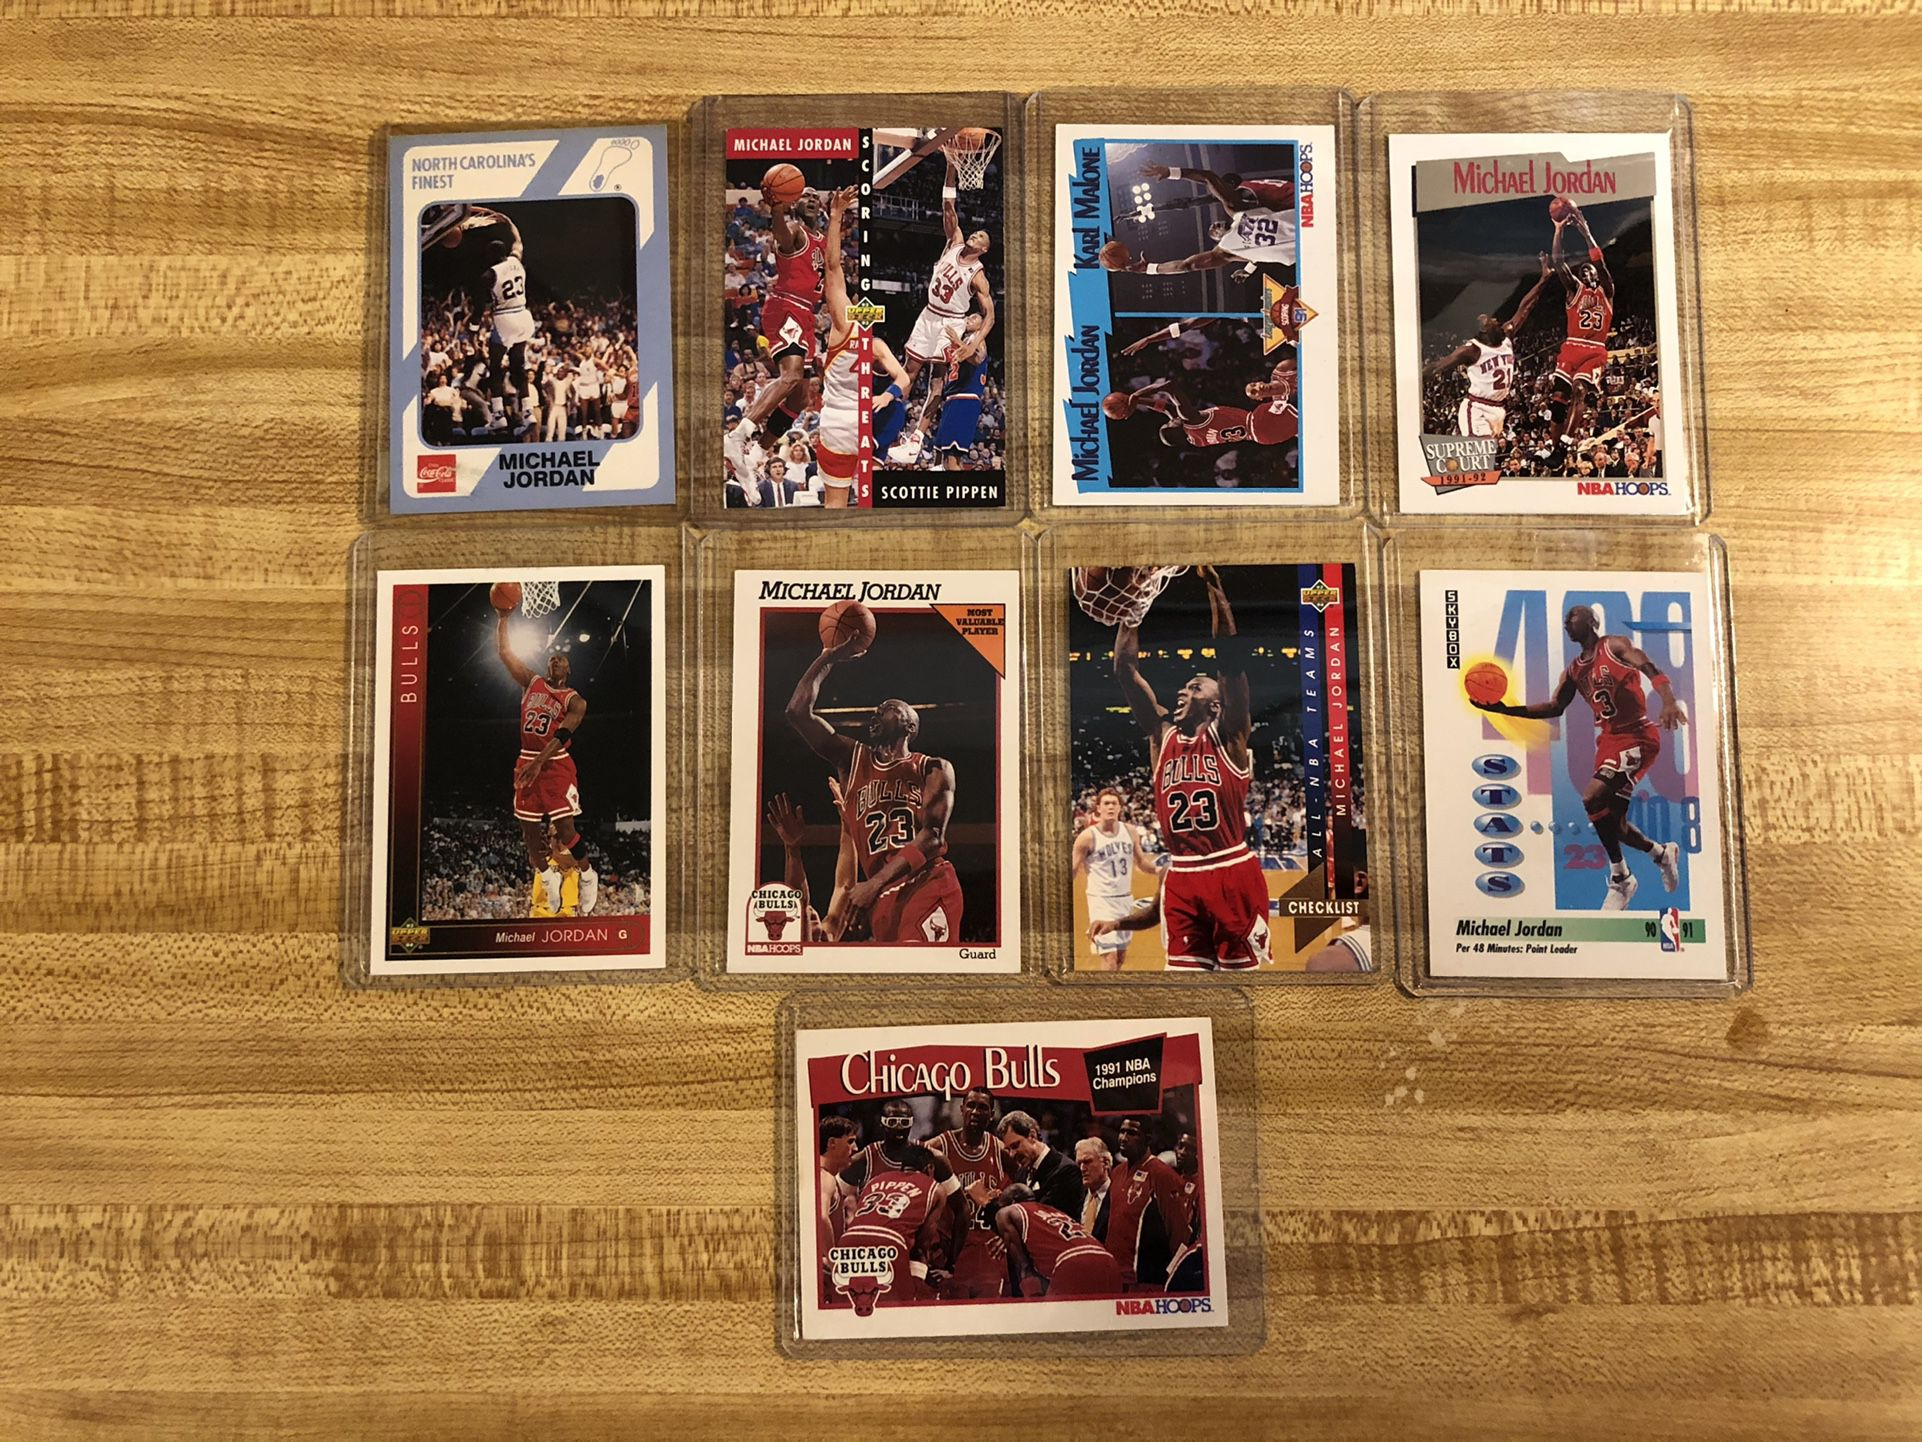 Michael Jordan  41 Cards Of The Goat Great Price $150 Pick Up $180 Shipped Through Pay Pal Or Venmo